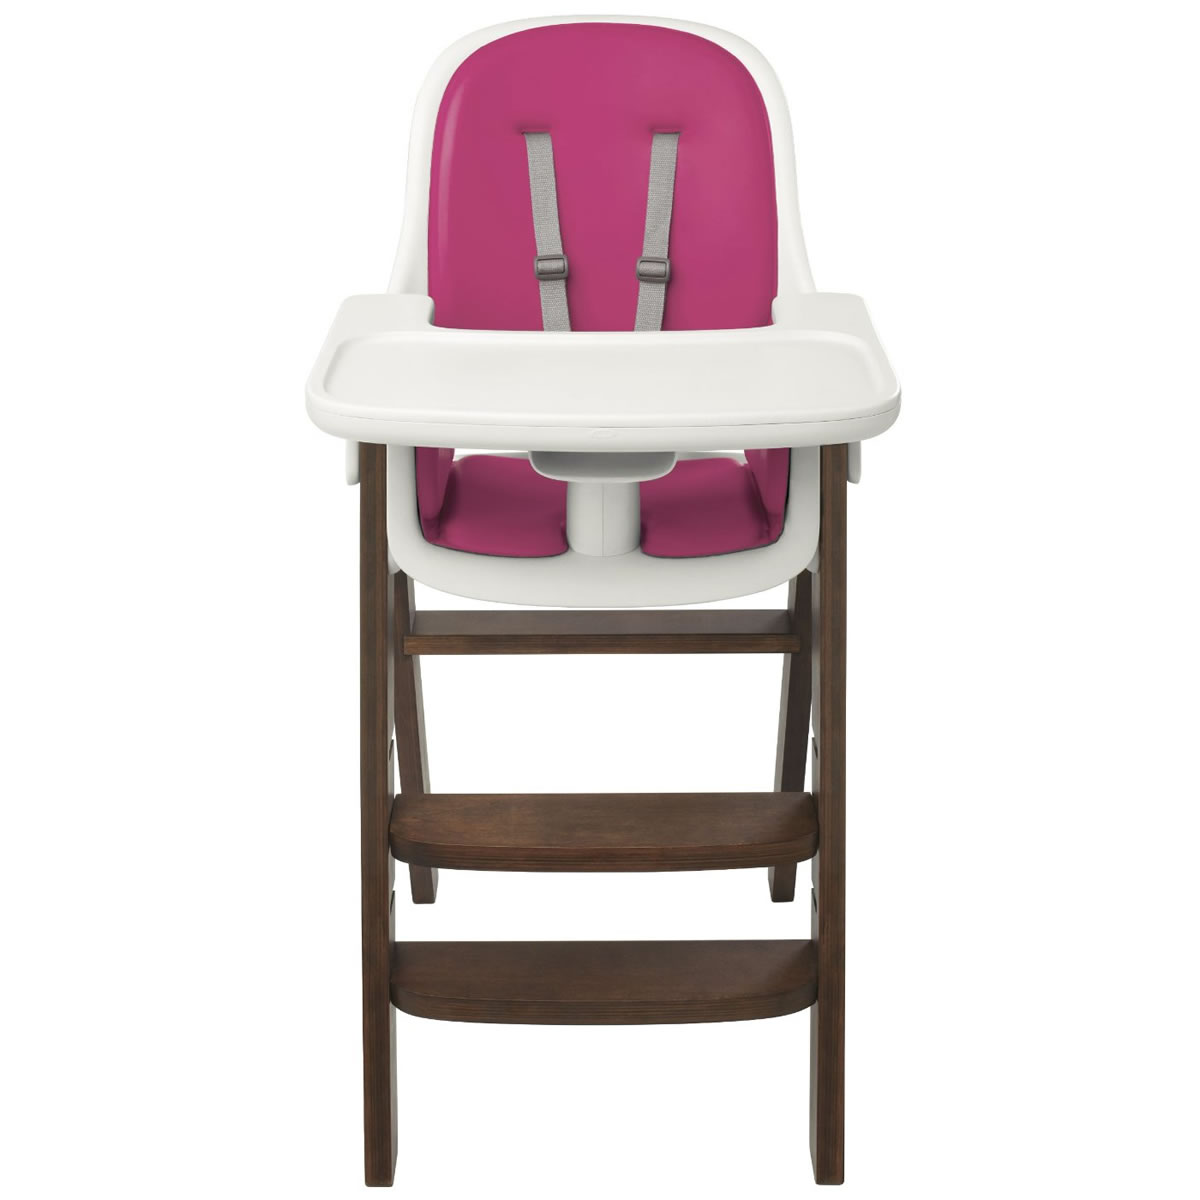 albee baby high chair country dining room chairs oxo tot sprout pink walnut